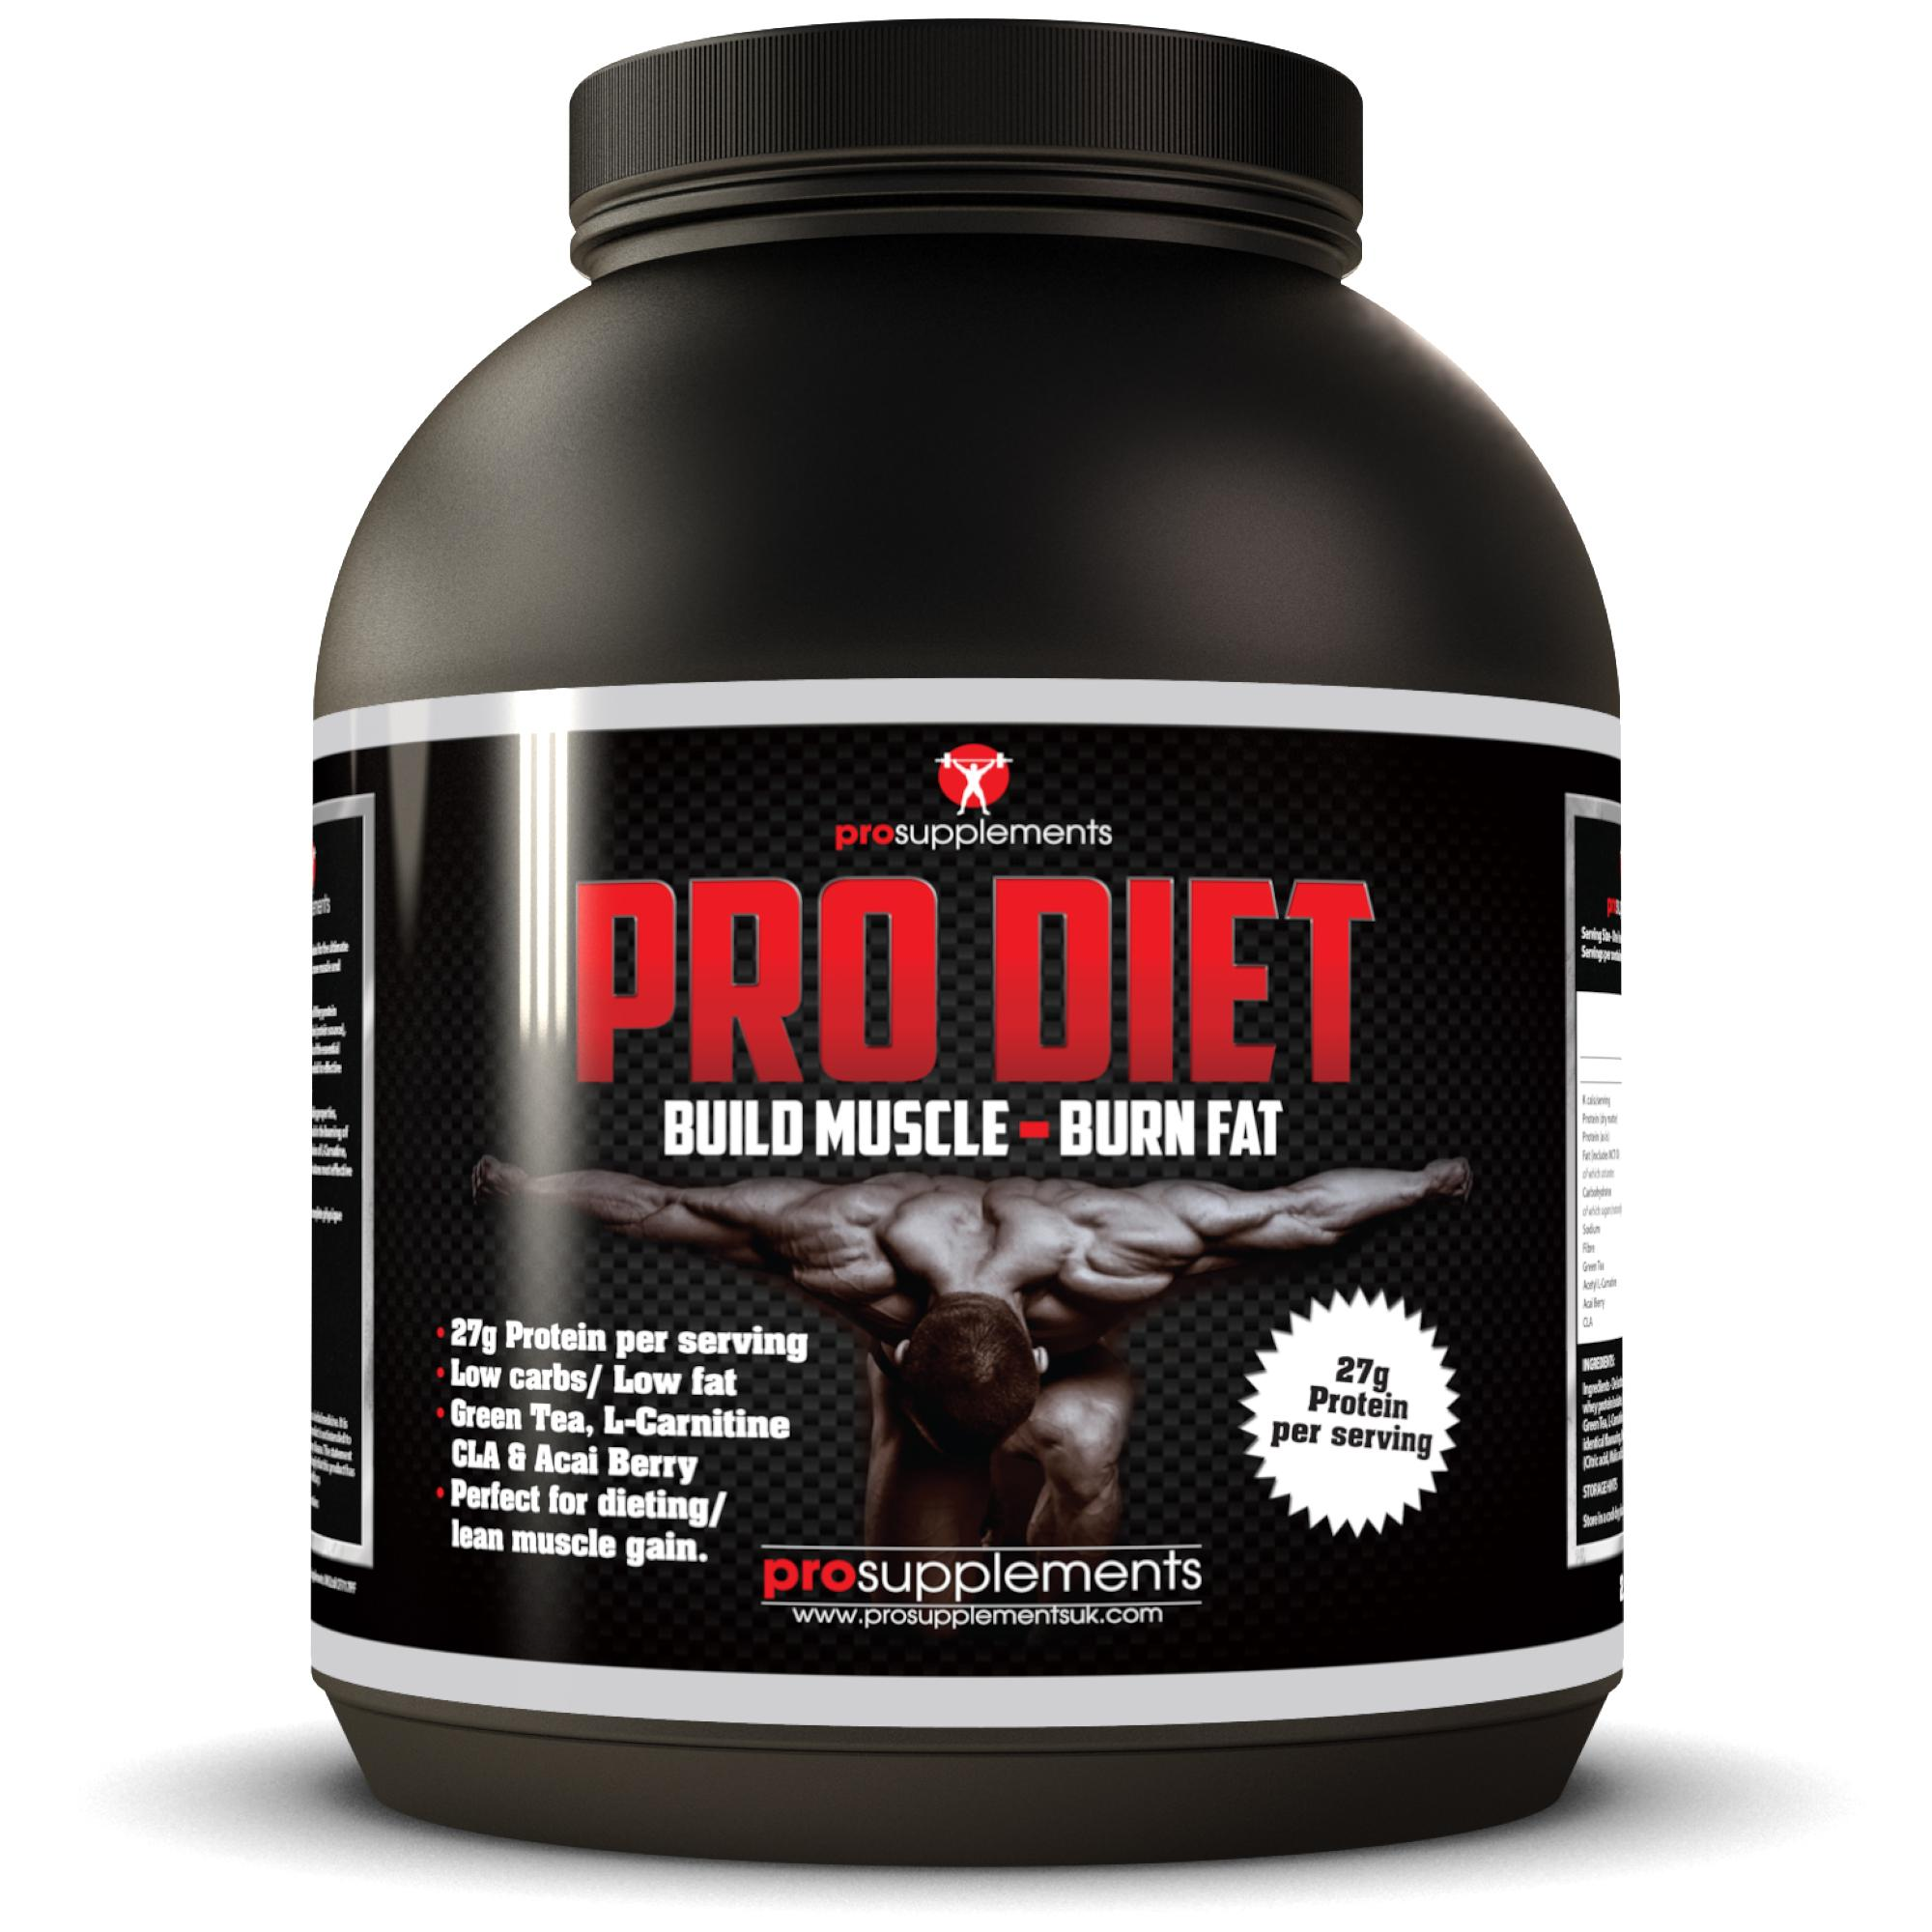 RT @1ProSupplements: If you want more muscle and less fat! - This is what you need! @ChidgeyValleys  http://t.co/5lY6YgIQUL http://t.co/2dT…